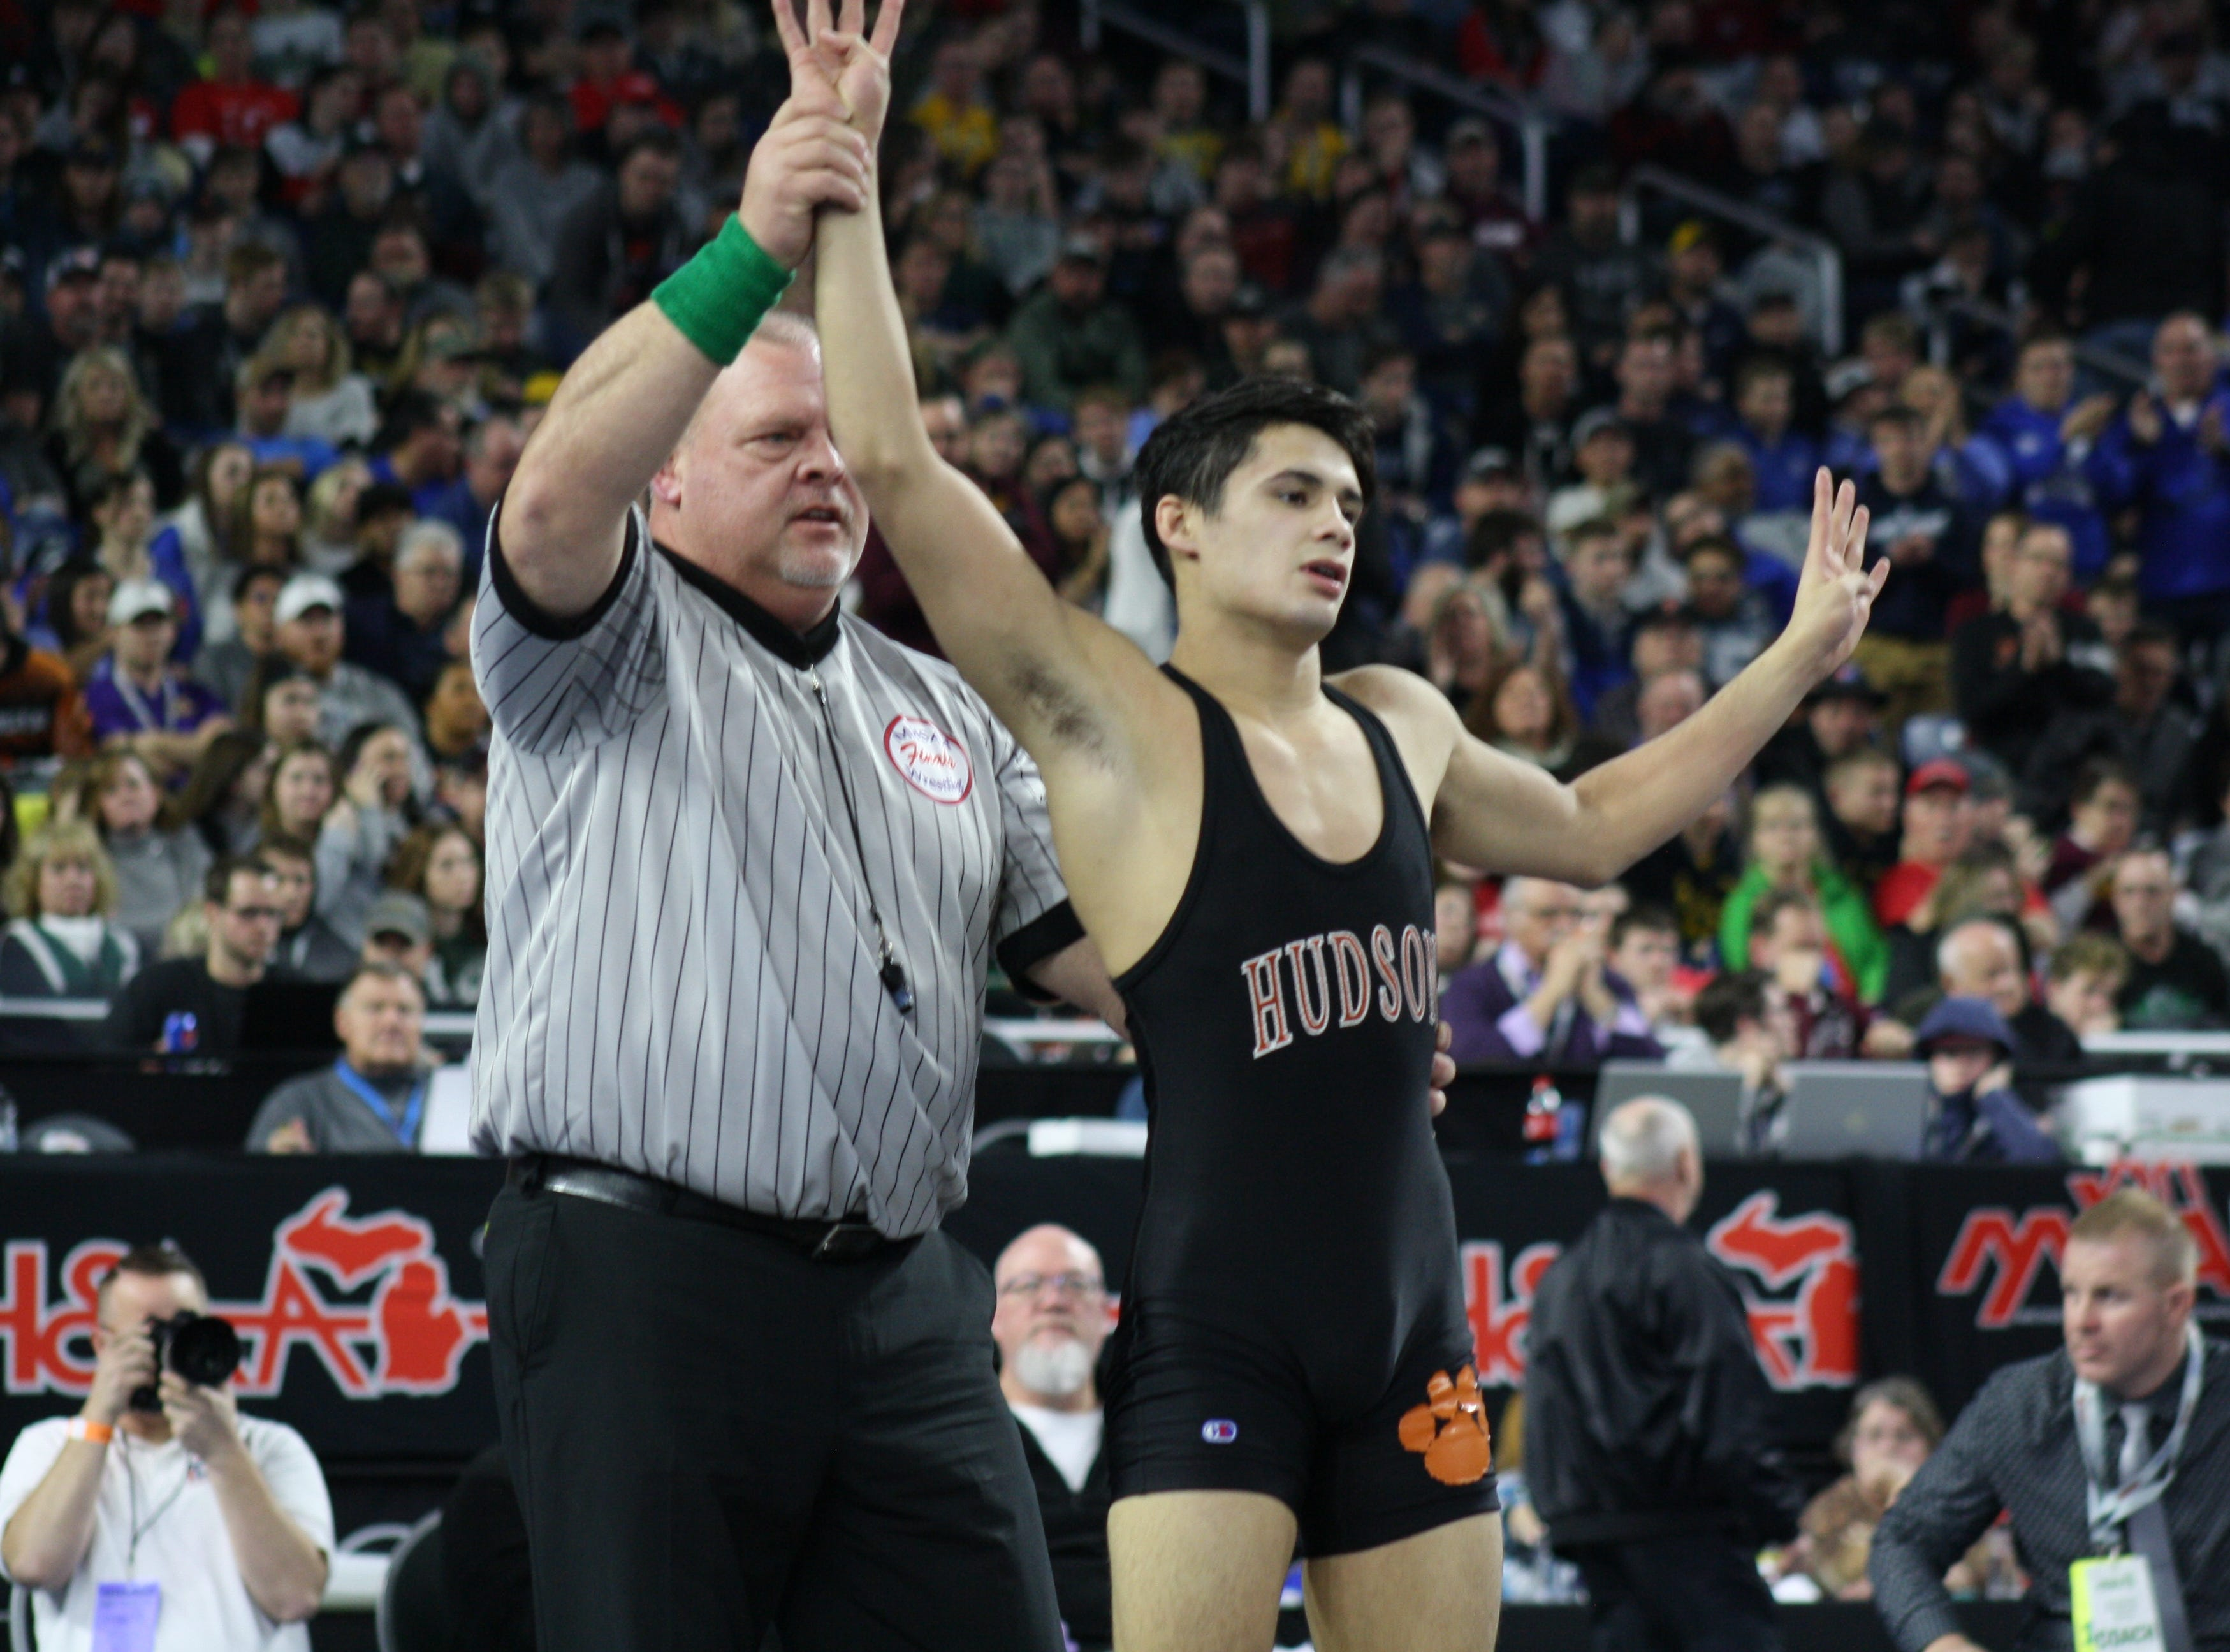 Four-time state champion Jordan Hamdan of Hudson raises four fingers after winning his fourth state championship on Saturday, March 2, 2019 at Ford Field.